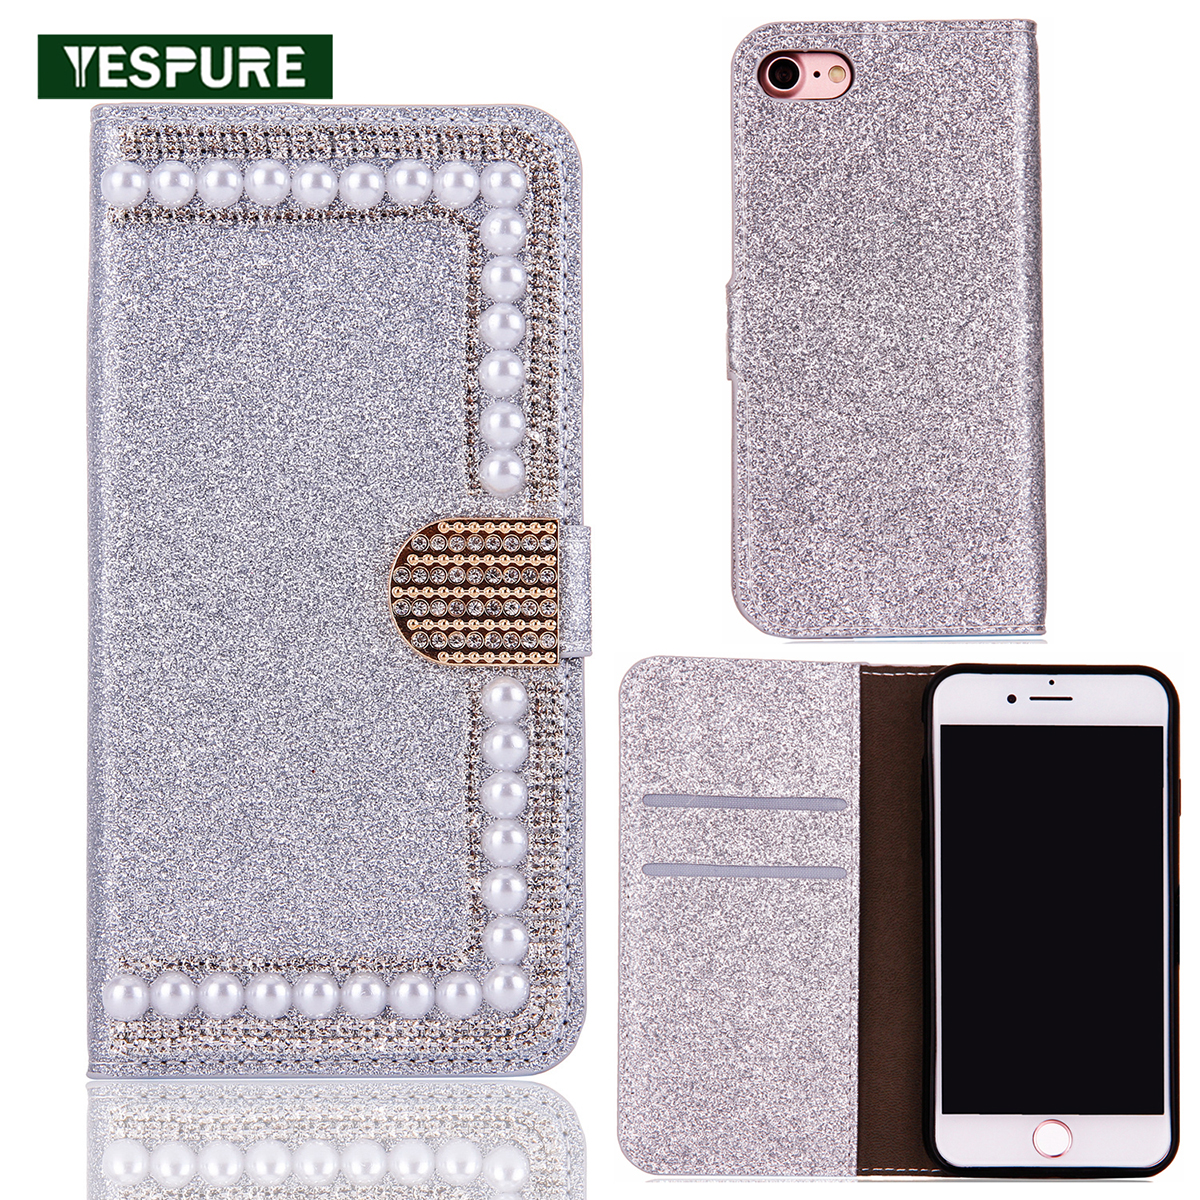 YESPURE TPU+Leather Bling Luxury <font><b>Coque</b></font> for <font><b>Iphone</b></font> 6 <font><b>6s</b></font> <font><b>Fille</b></font> Glitter Cell Phone Covers Stand Fancy Leather Cases for Girls image